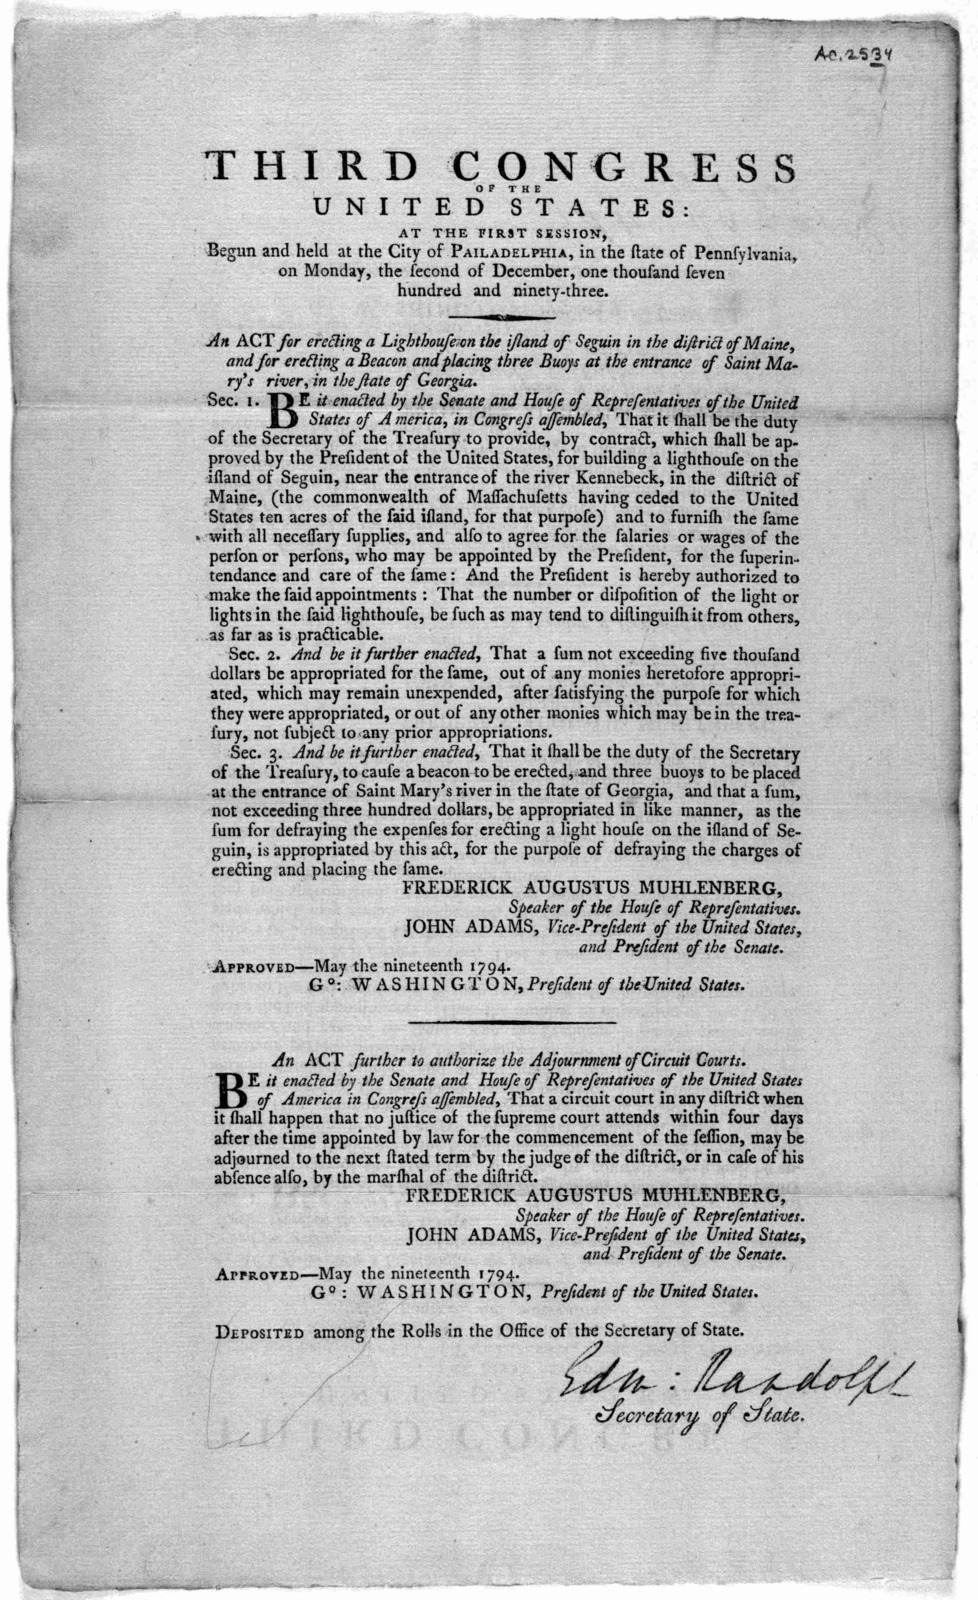 ... An act for erecting a lighthouse on the island of Seguin in the district of Maine, and for erecting a beacon and placing three buoys at the entrance of Saint Mary's river, in the state of Georgia ... [Followed by] An act further to authorize